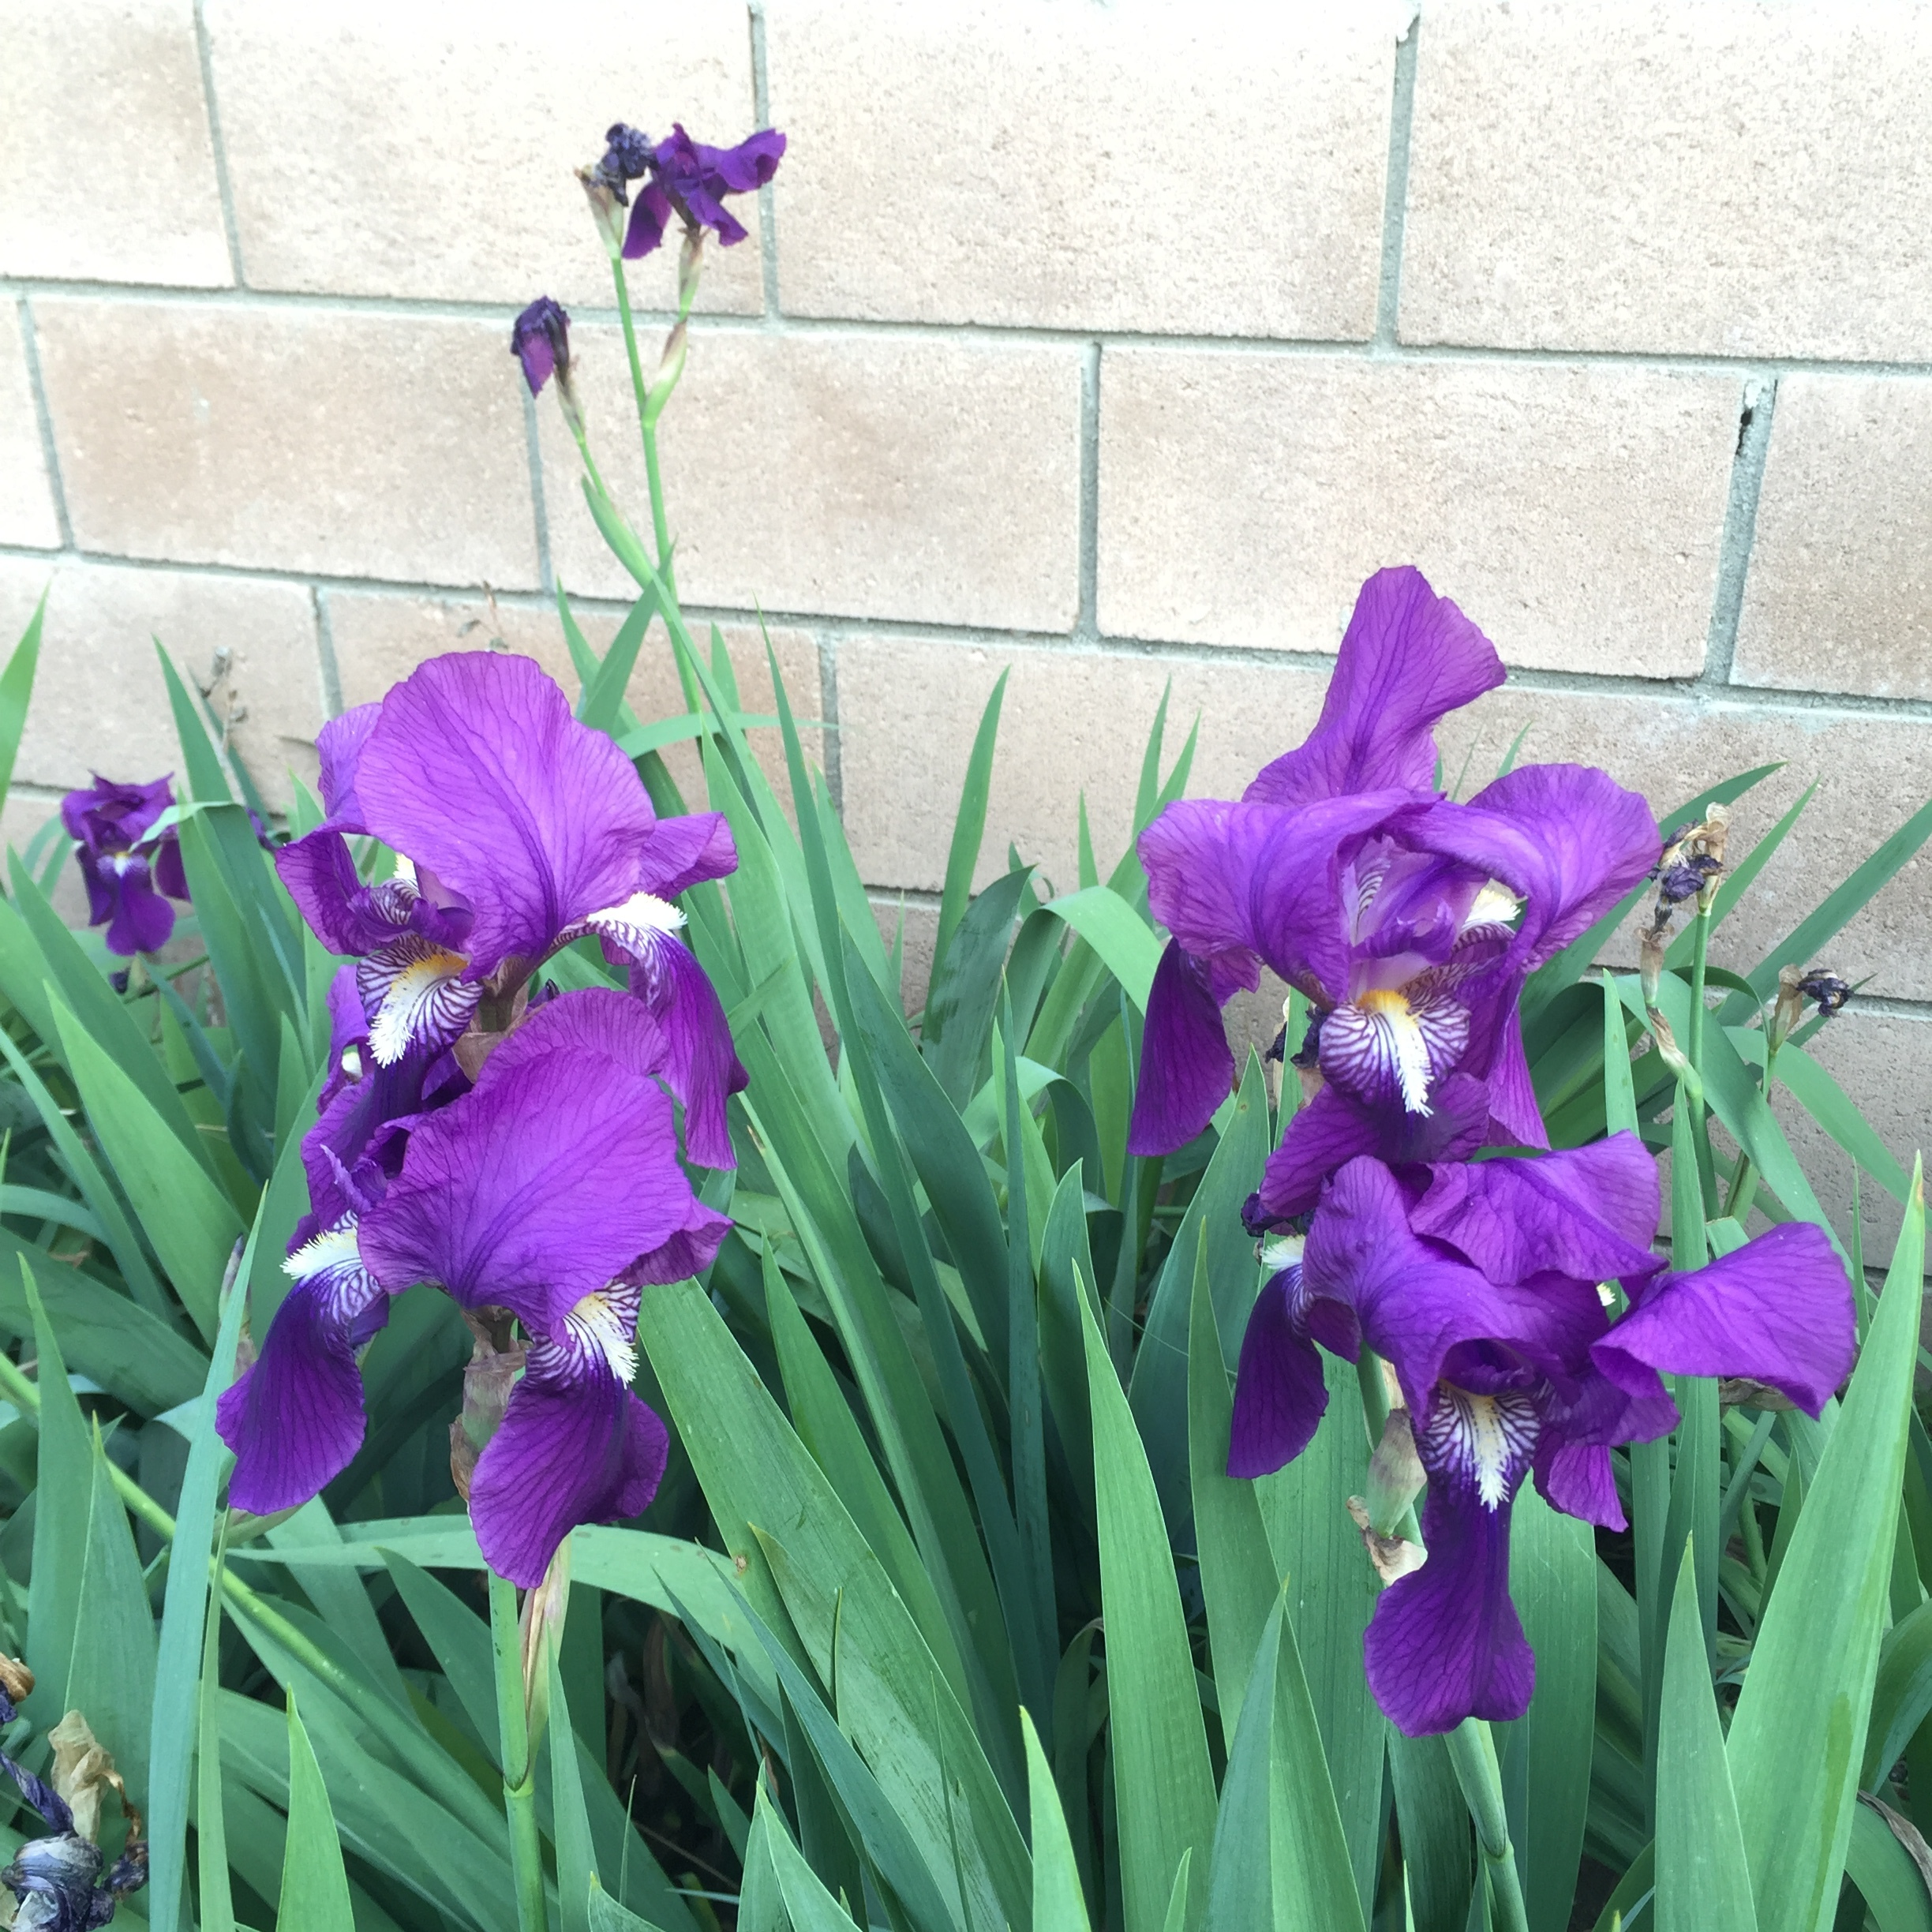 Purple and white (not pictured) irises.